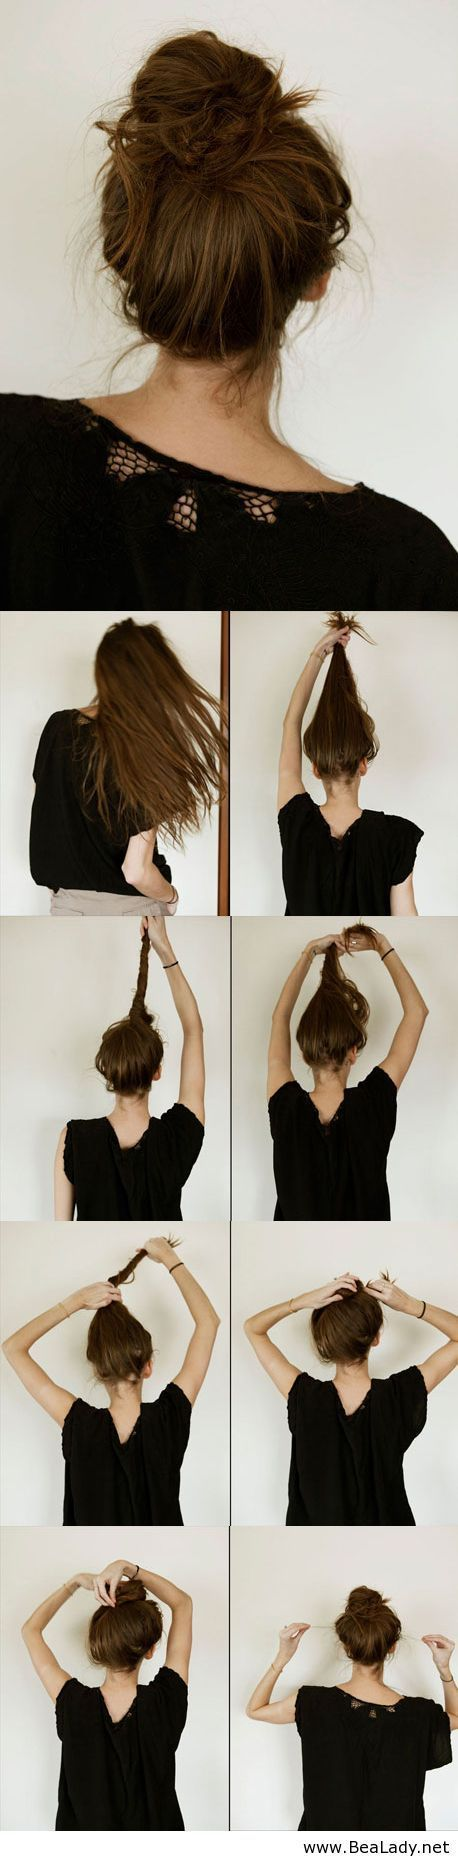 DIY messy bun not completely sure what that last step is doing but yeah